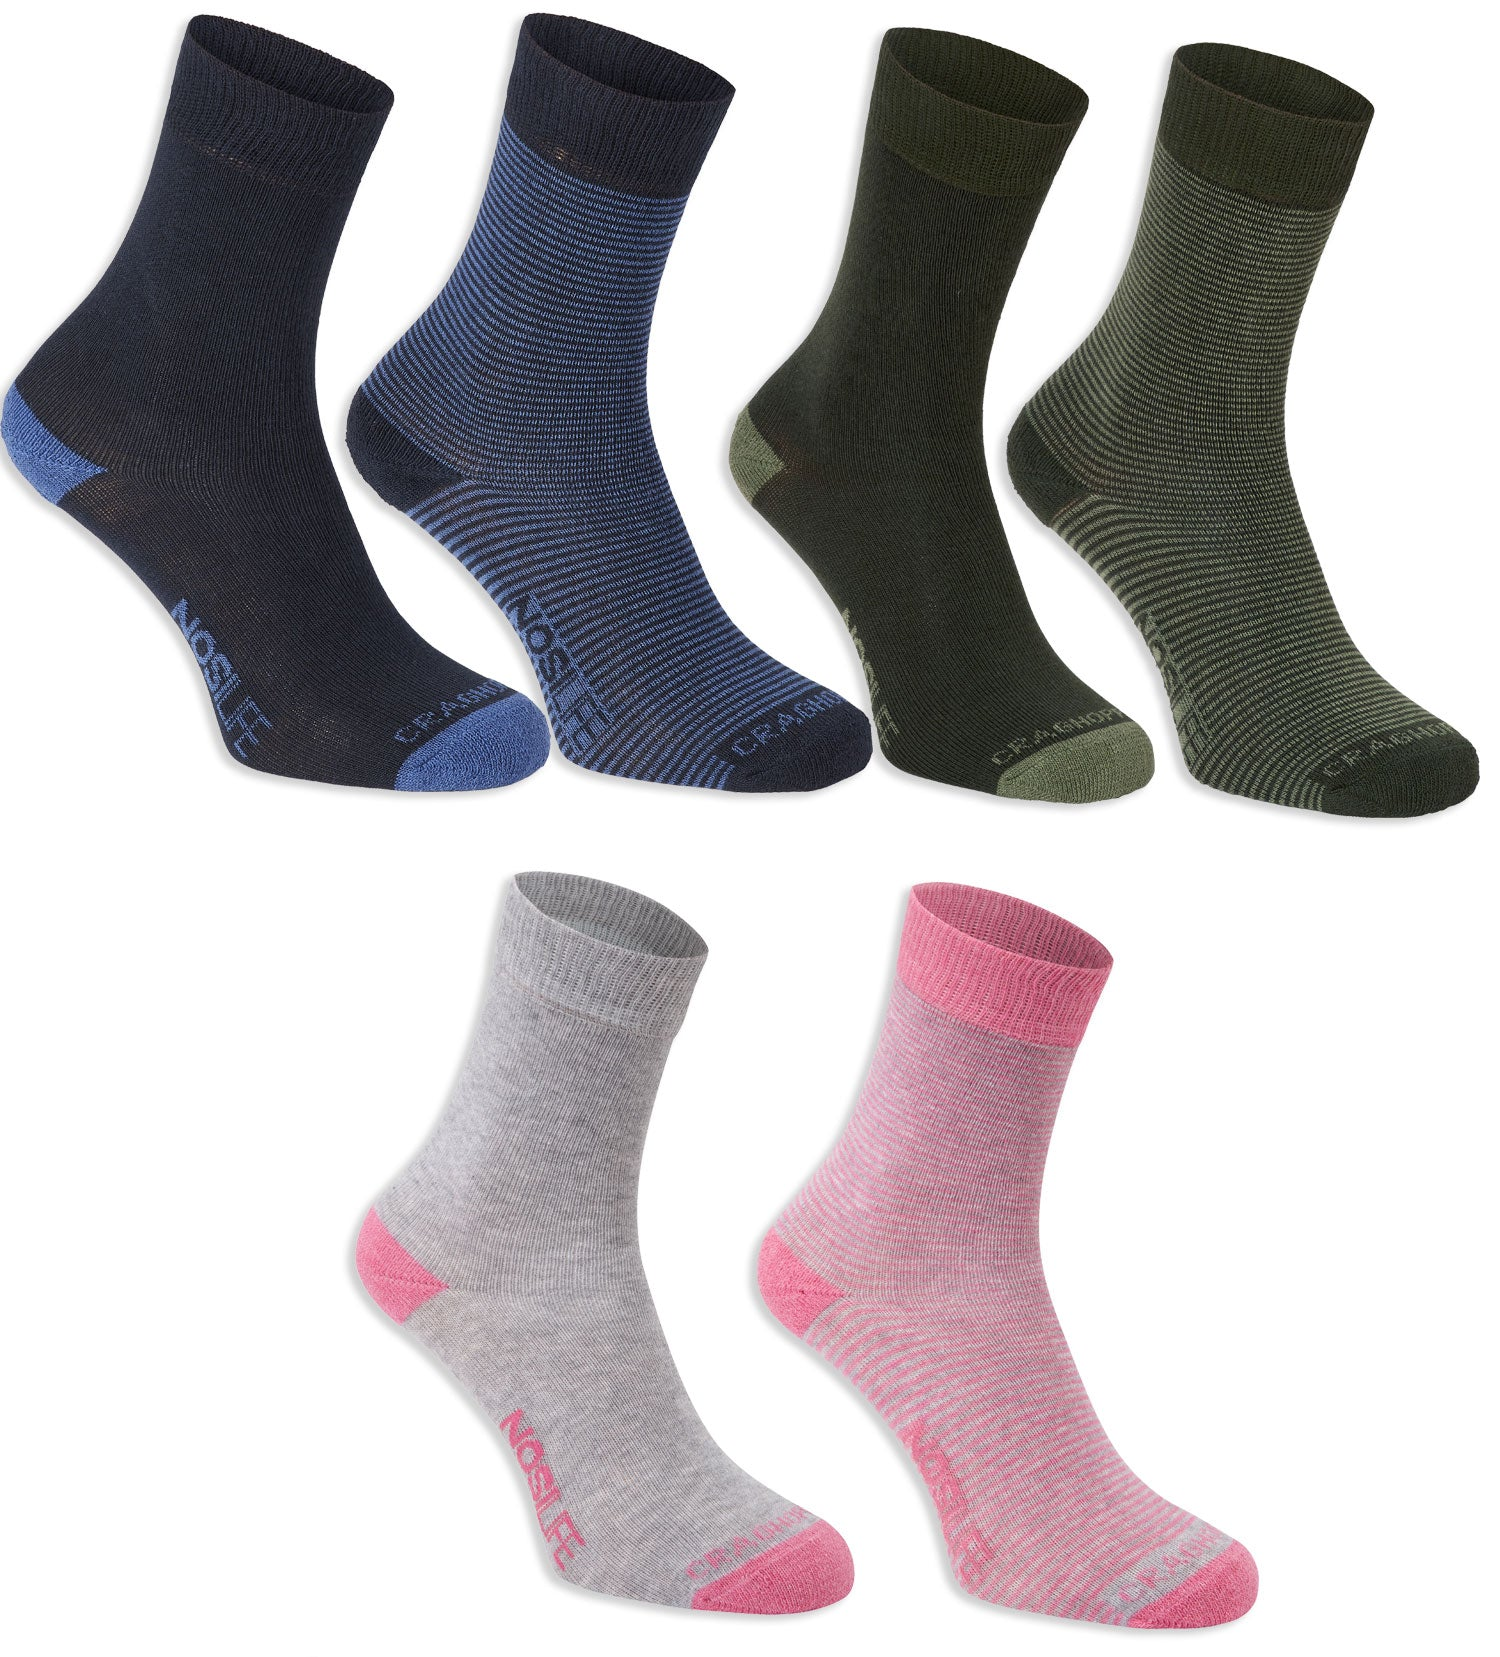 Craghoppers Women's NosiLife Sock in Pink, Navy and Green